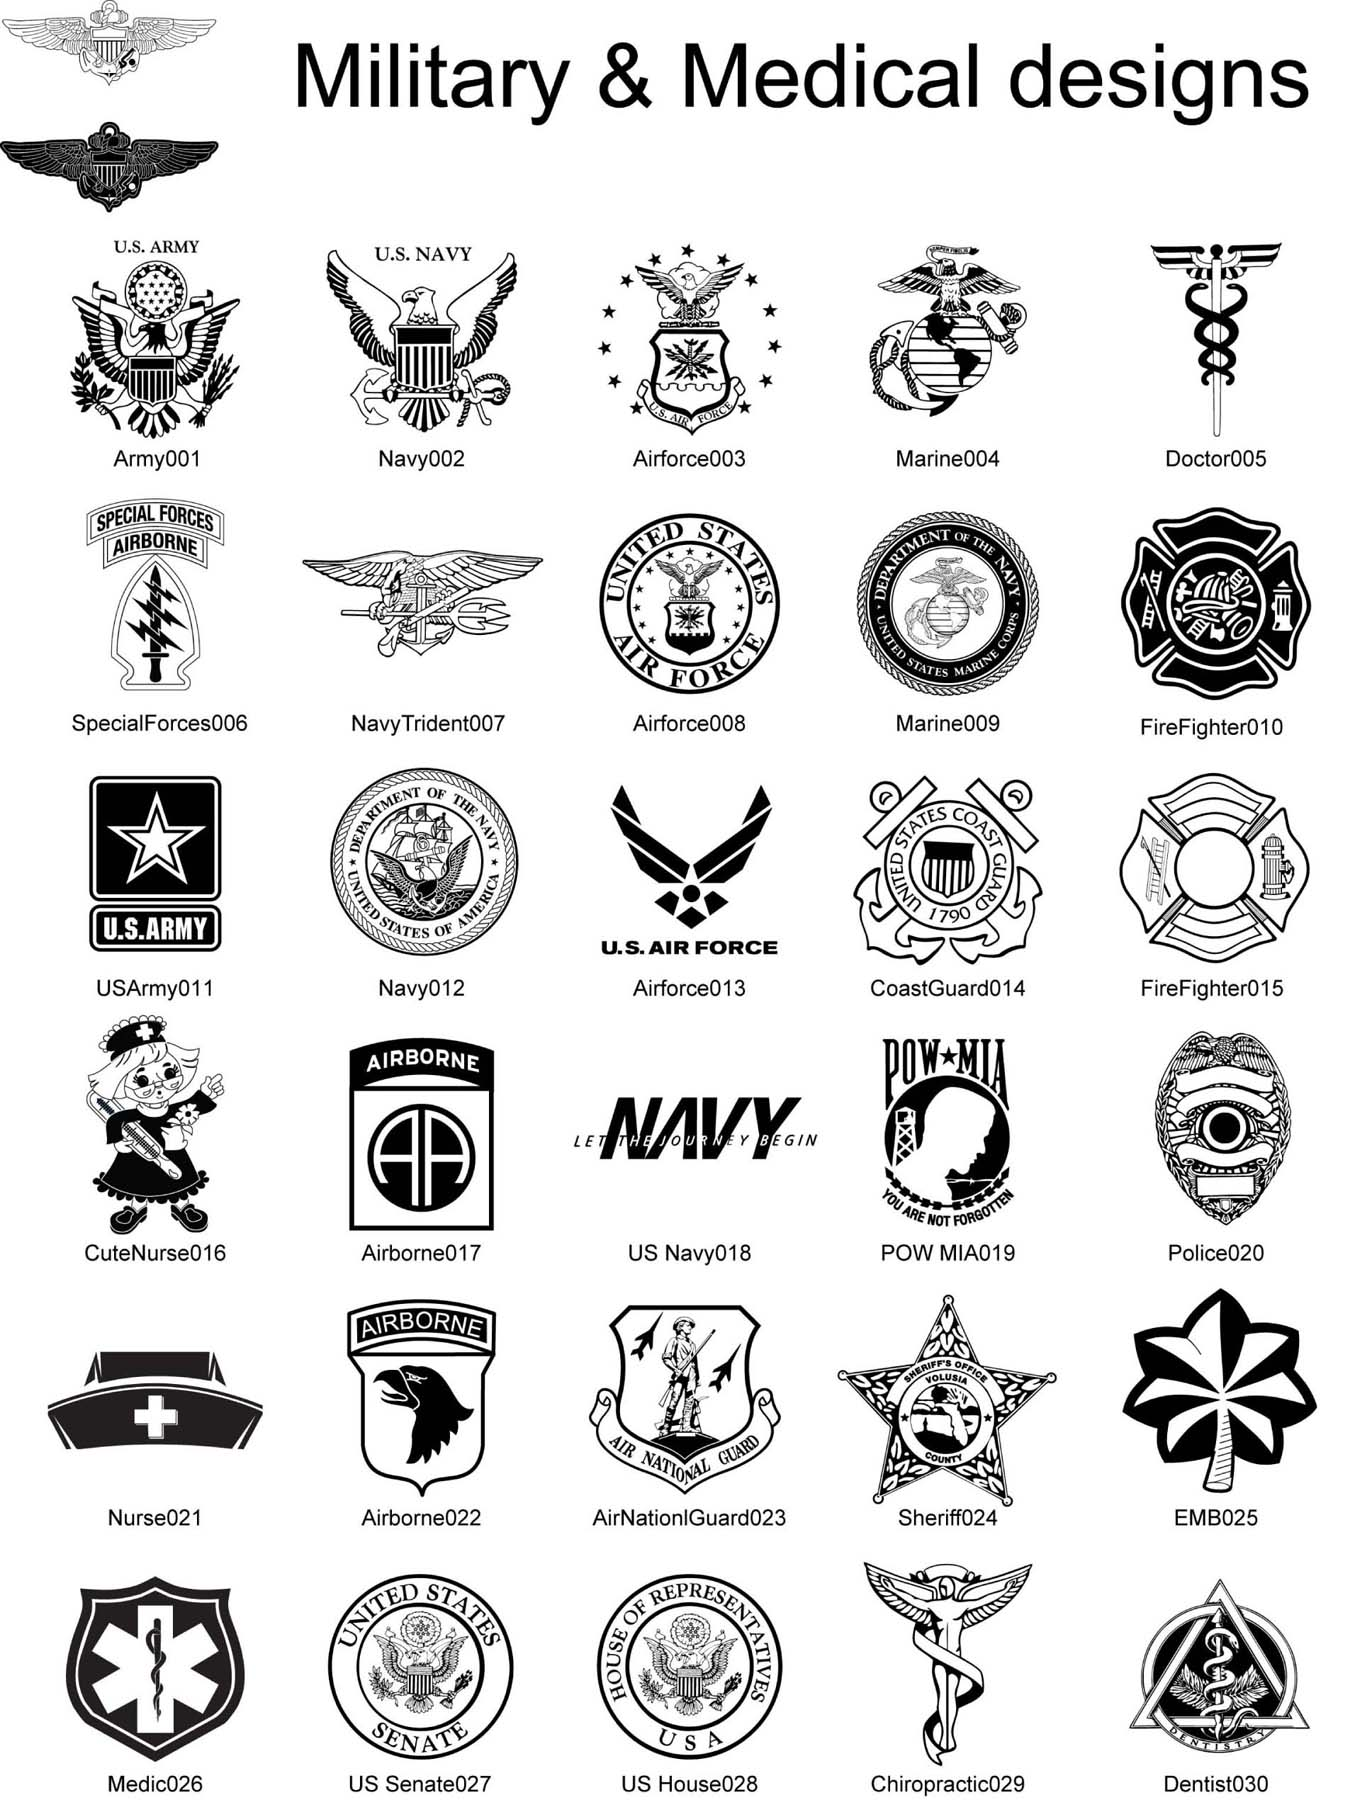 Personalized Engraved Military designs and patches Air